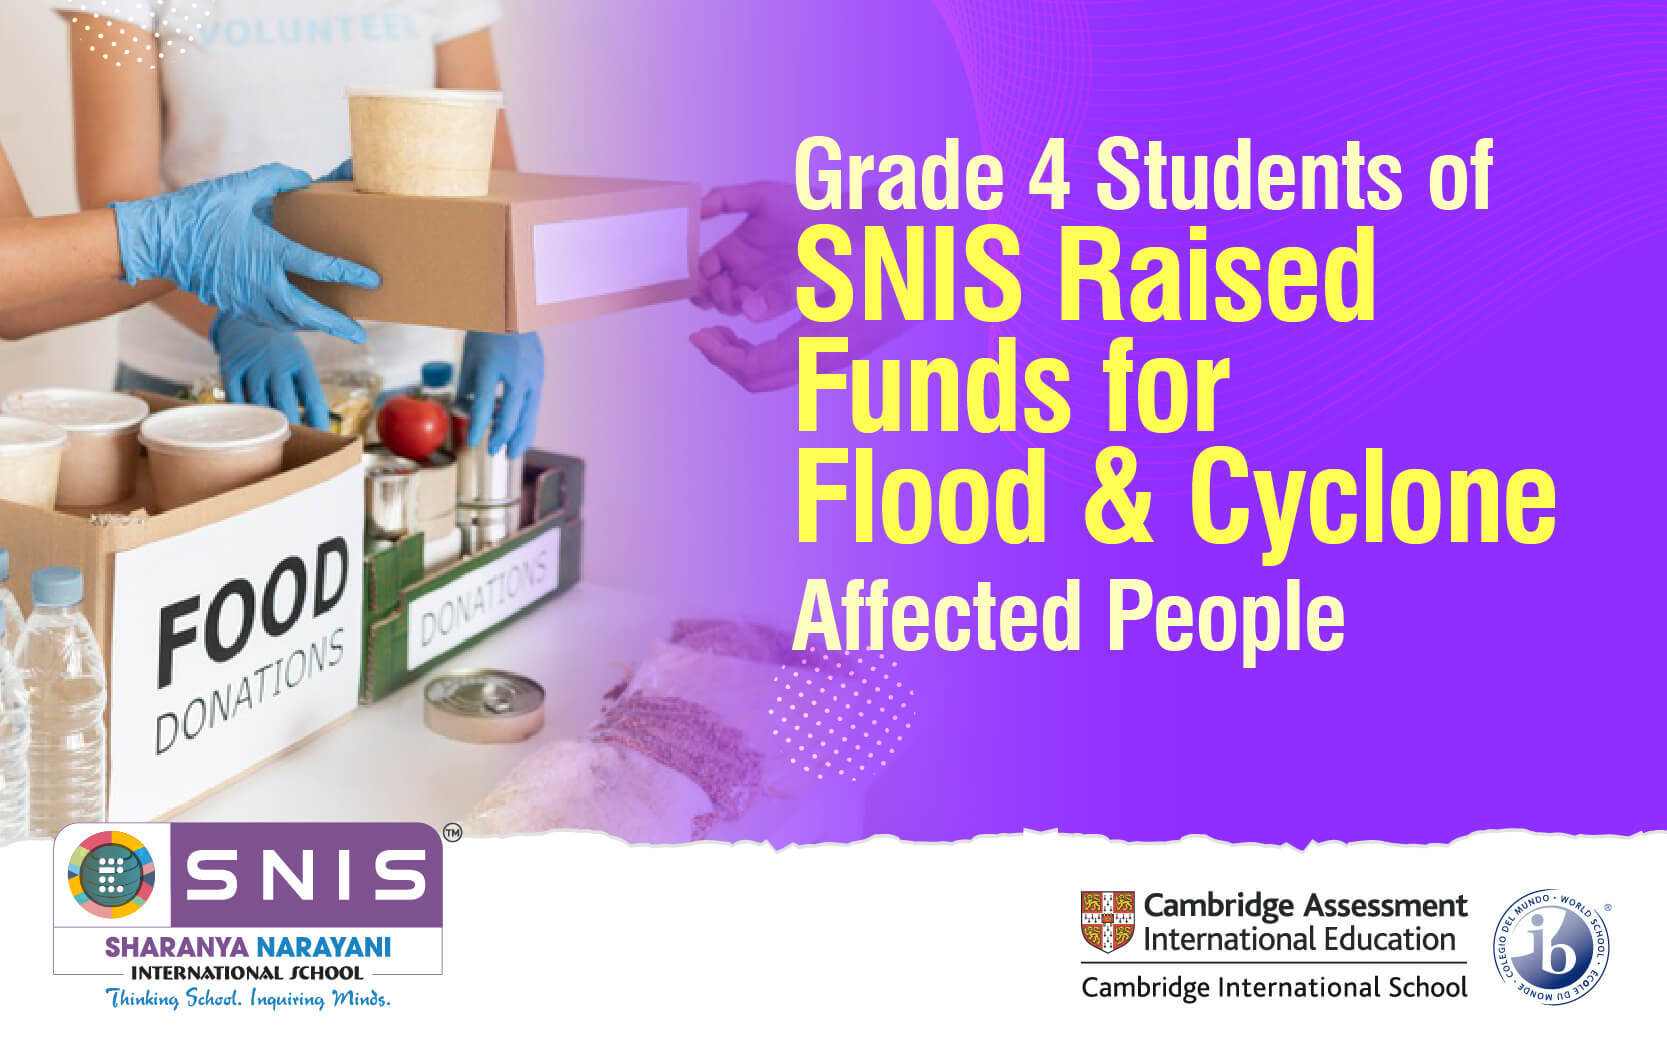 Grade 4 Students of SNIS Raised Funds for Flood & Cyclone Affected People by SNIS Boarding schools in bangalore